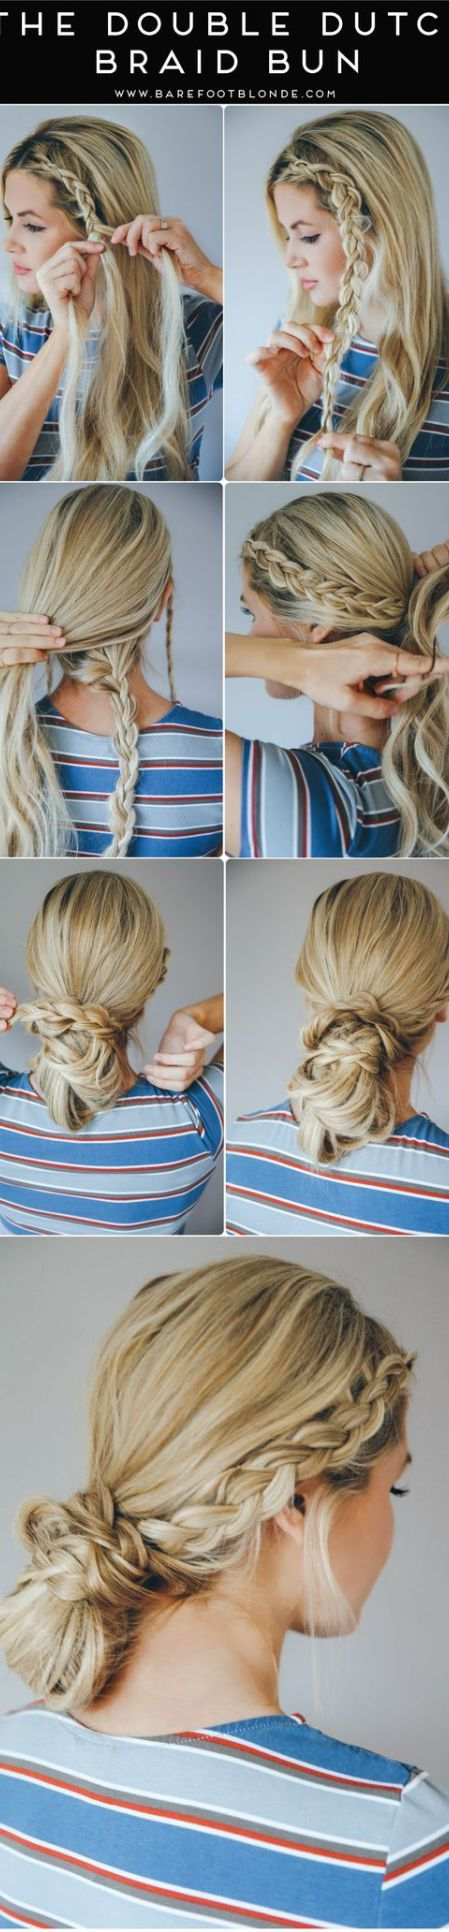 stunning hairstyles for different occasions pinterest hair